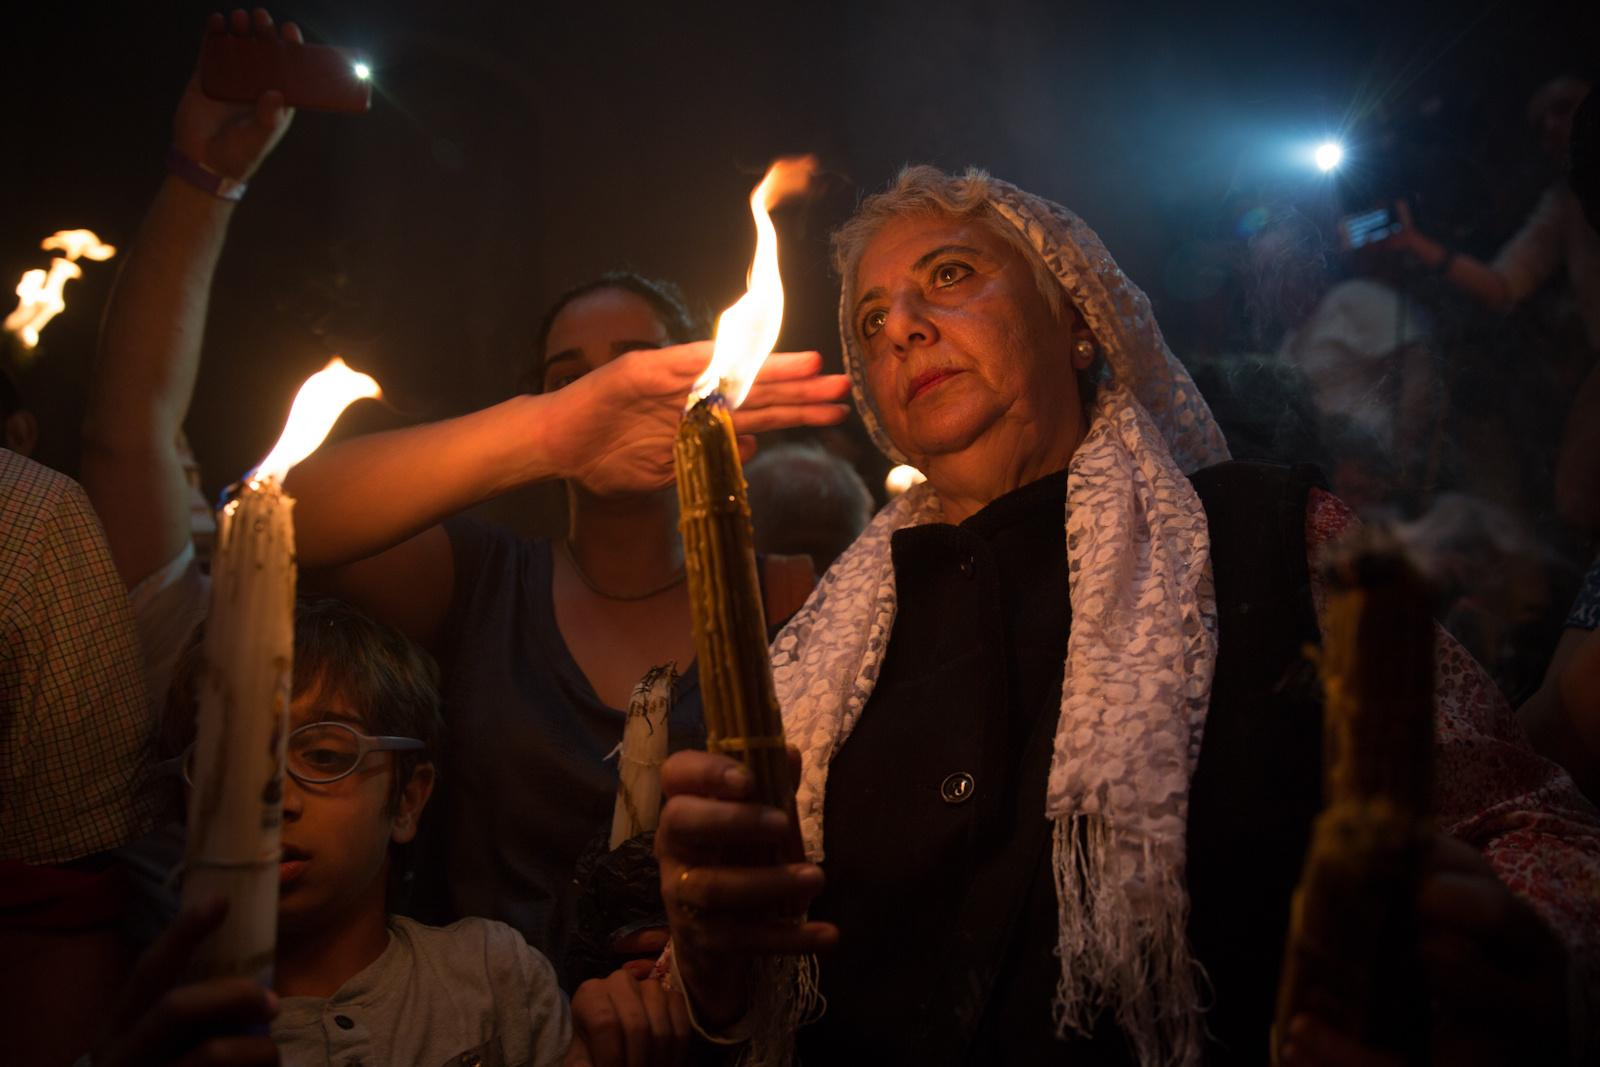 JERUSALEM, ISRAEL - APRIL 30, 2016: Orthodox Christian worshippers light packs of candles as they take part in the Holy Fire ceremony at the Church of the Holy Sepulchre, traditionally believed to be the burial site of Jesus Christ, in Jerusalem's Old City during the Easter holiday, April 30, 2016.